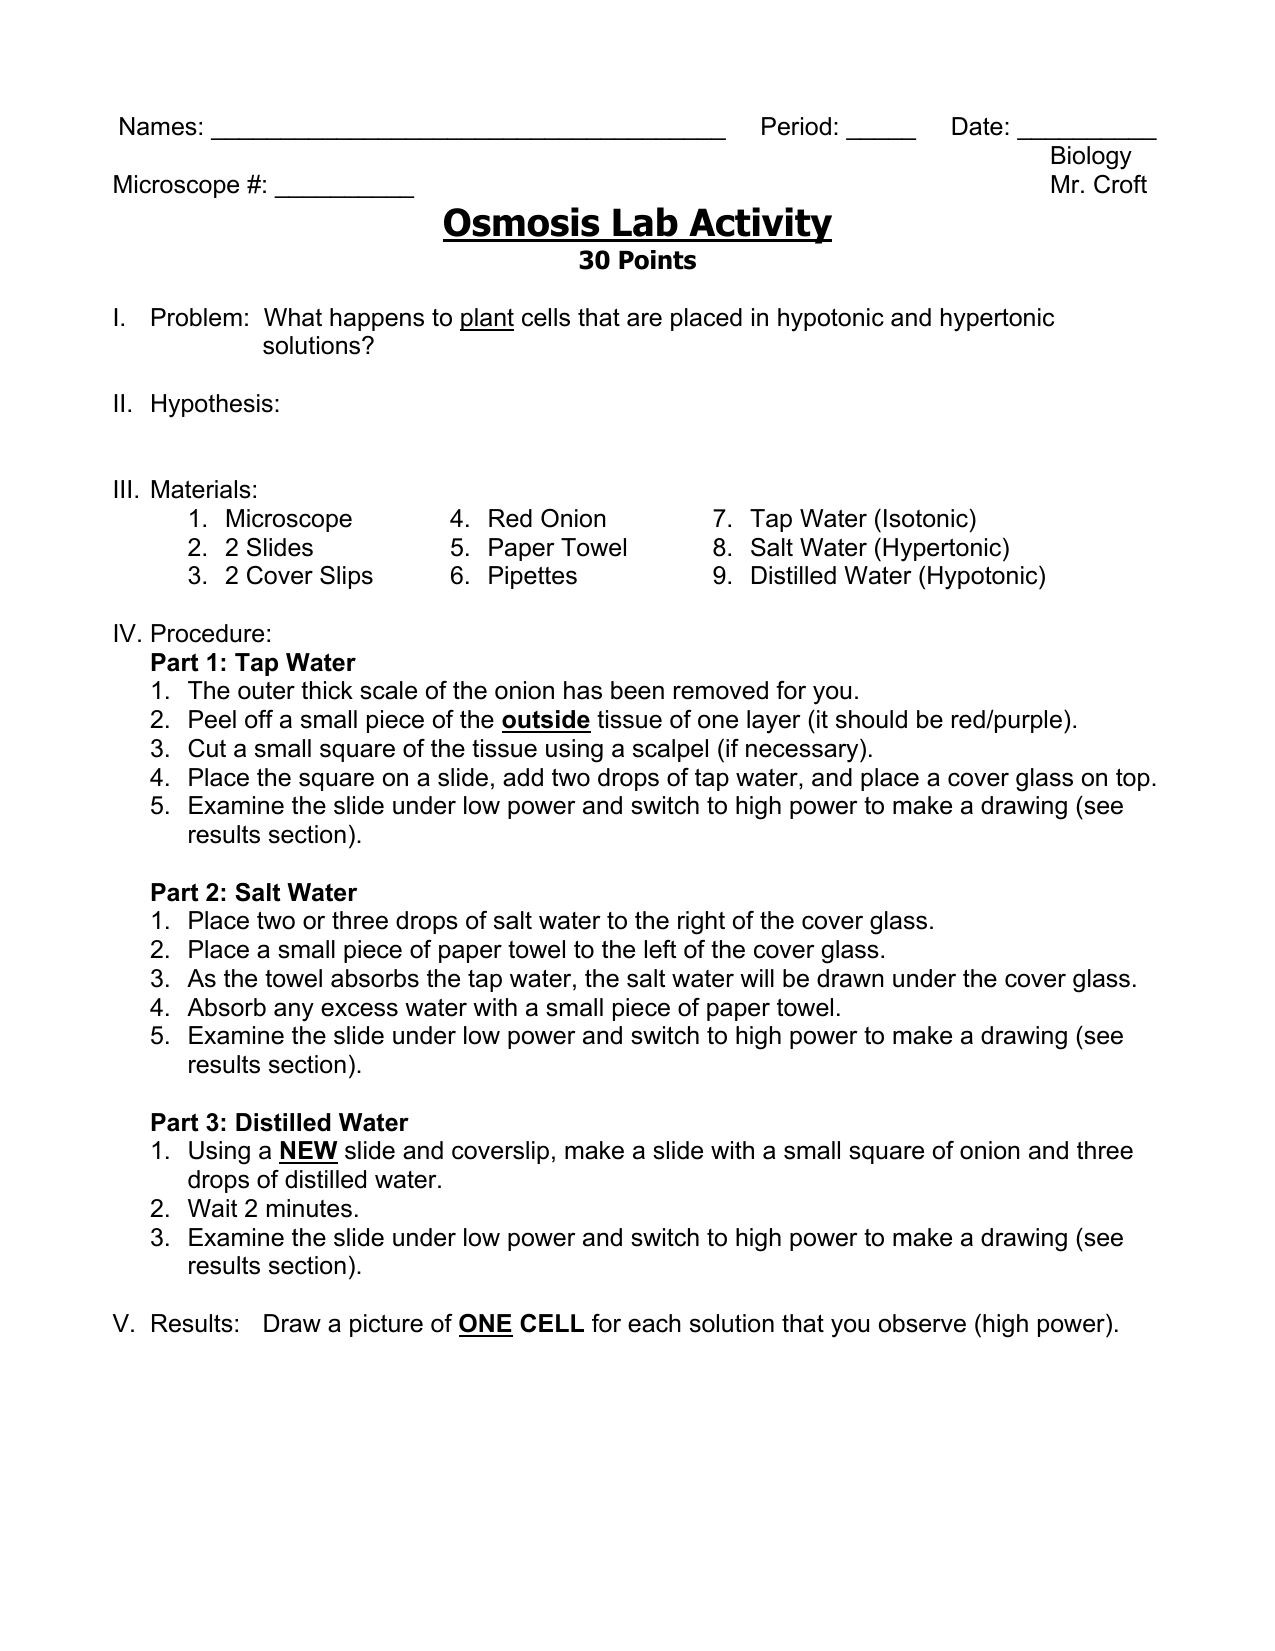 Osmosis Lab Activity